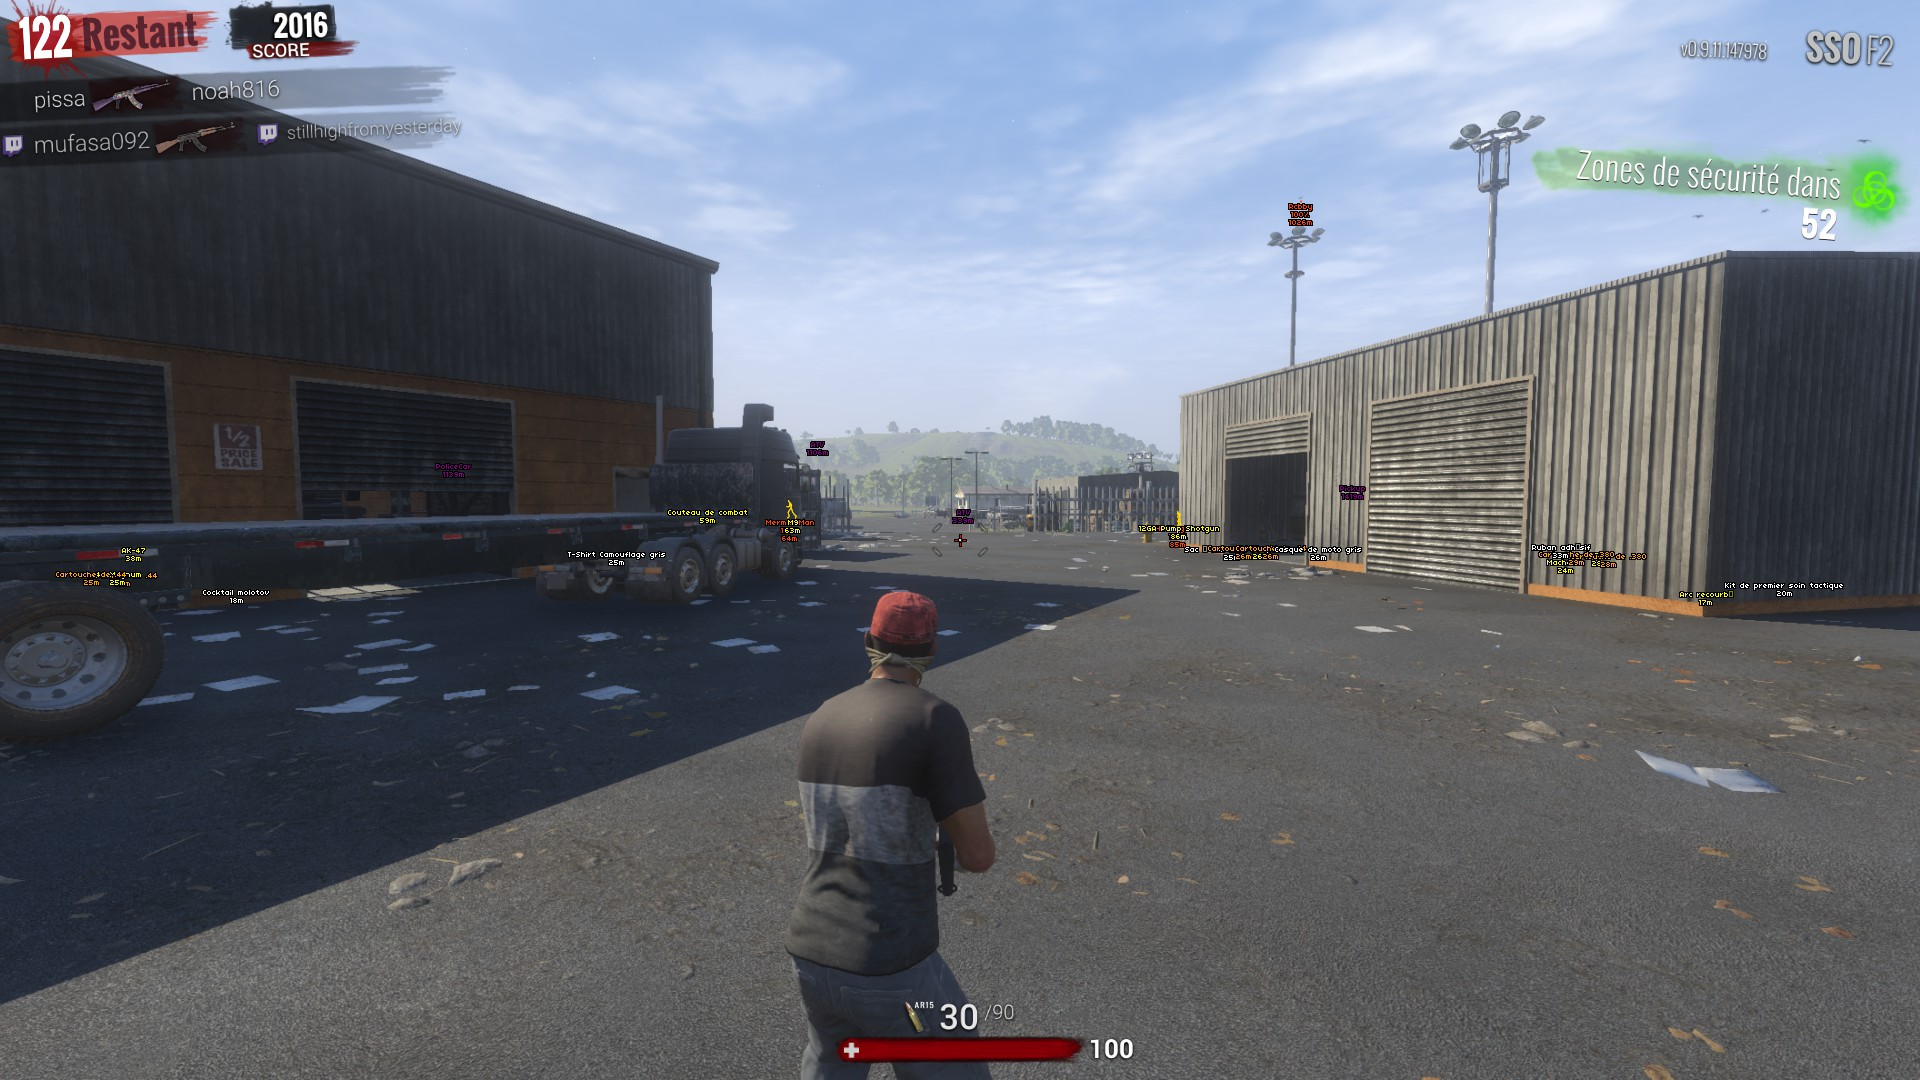 h1z1 aimbot 2017 download